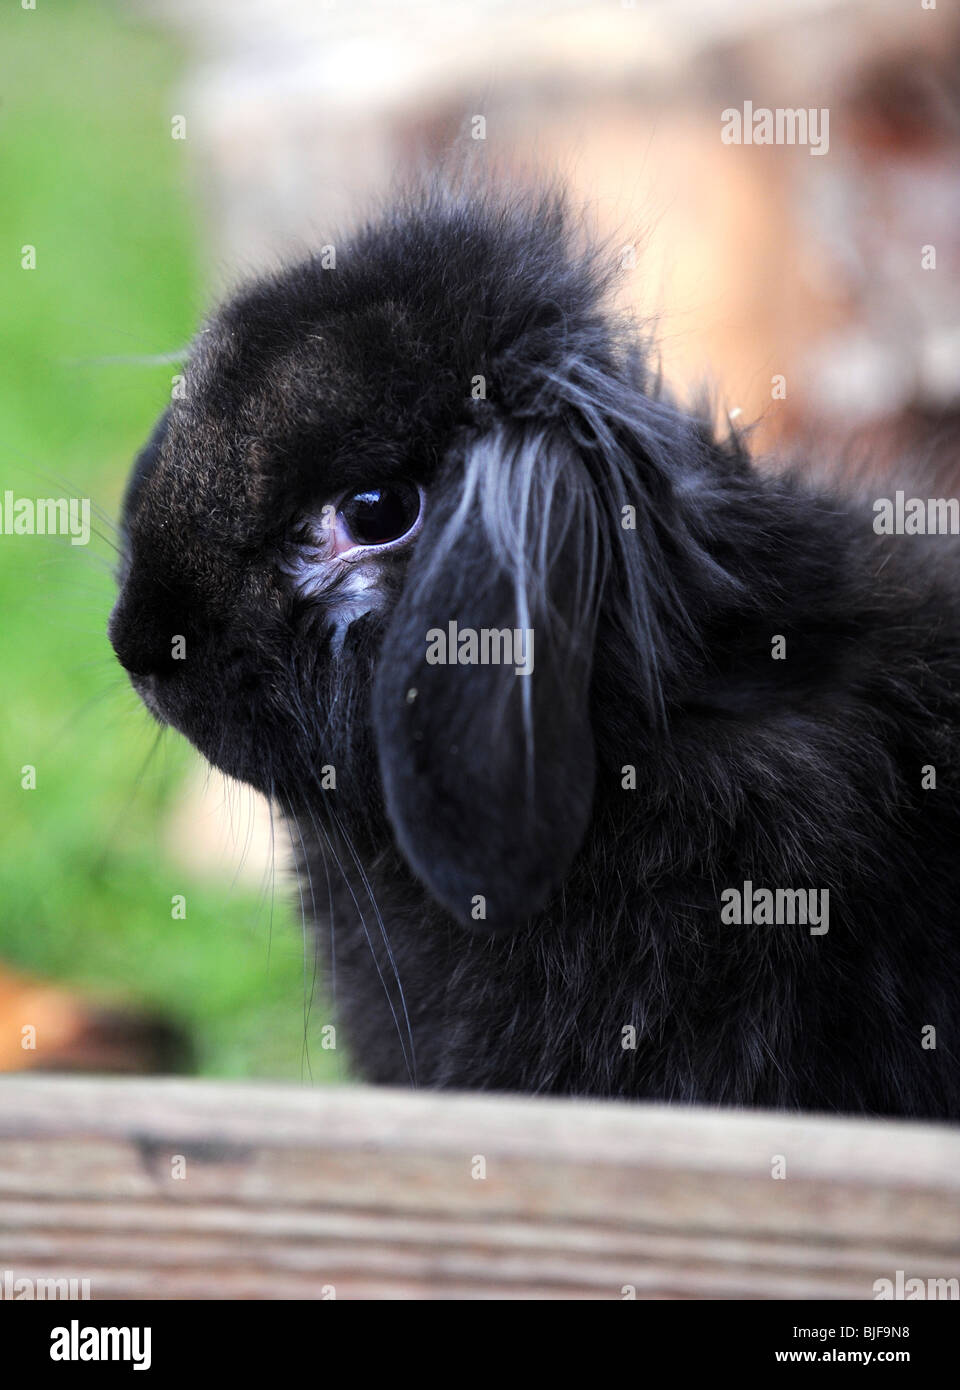 A black lop eared rabbit - Stock Image